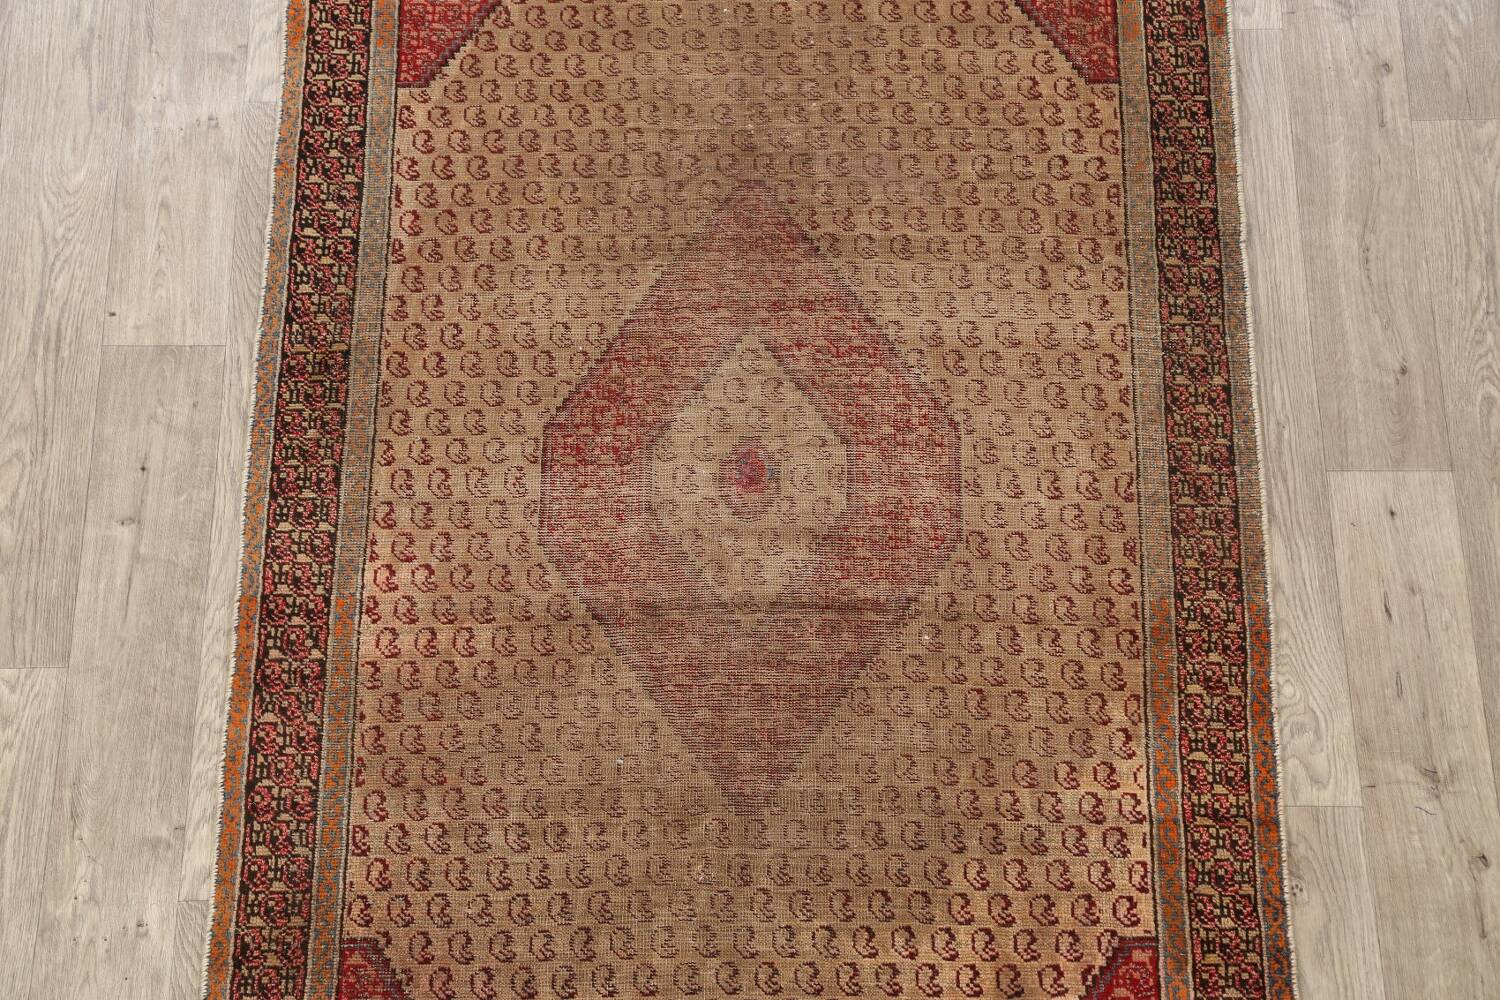 Antique Boteh Botemir Persian Area Rug 4x6 image 3